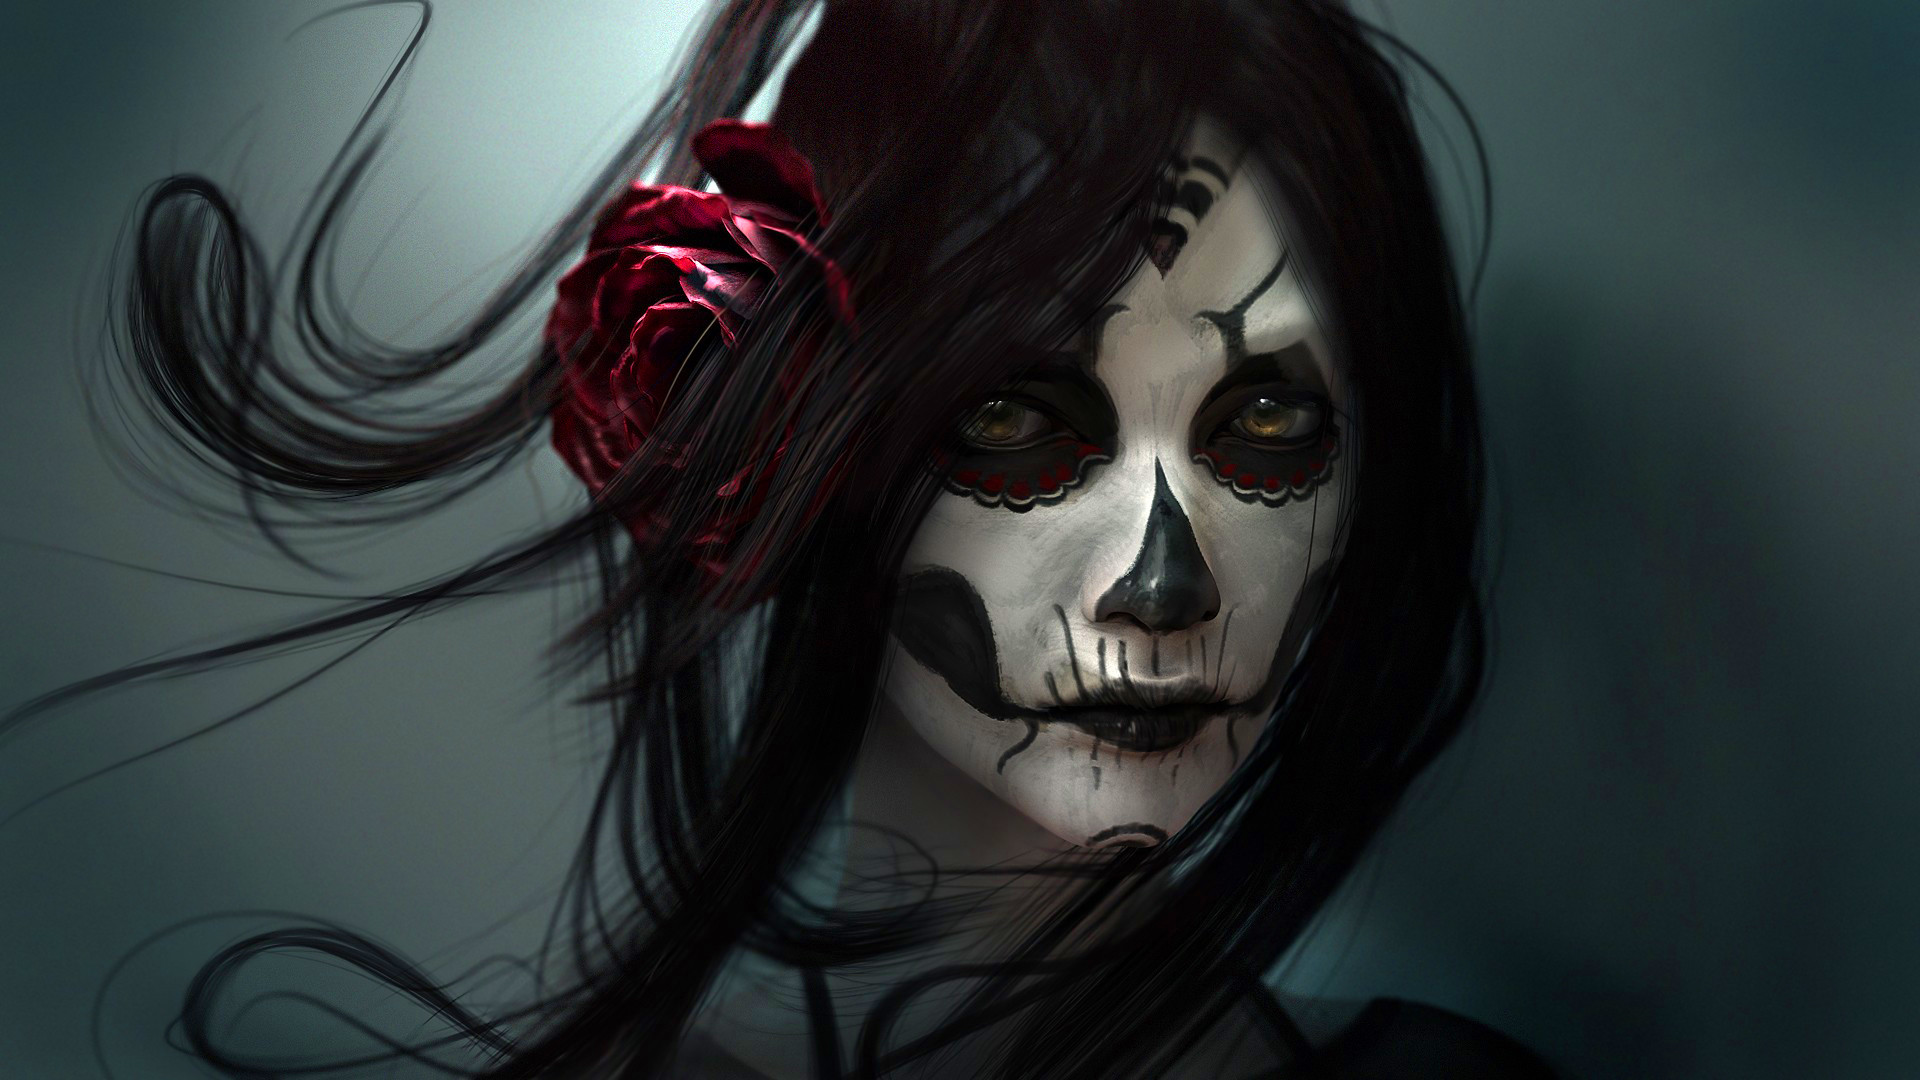 1920x1080 Download Skull Girl Wallpapers HD Full Size